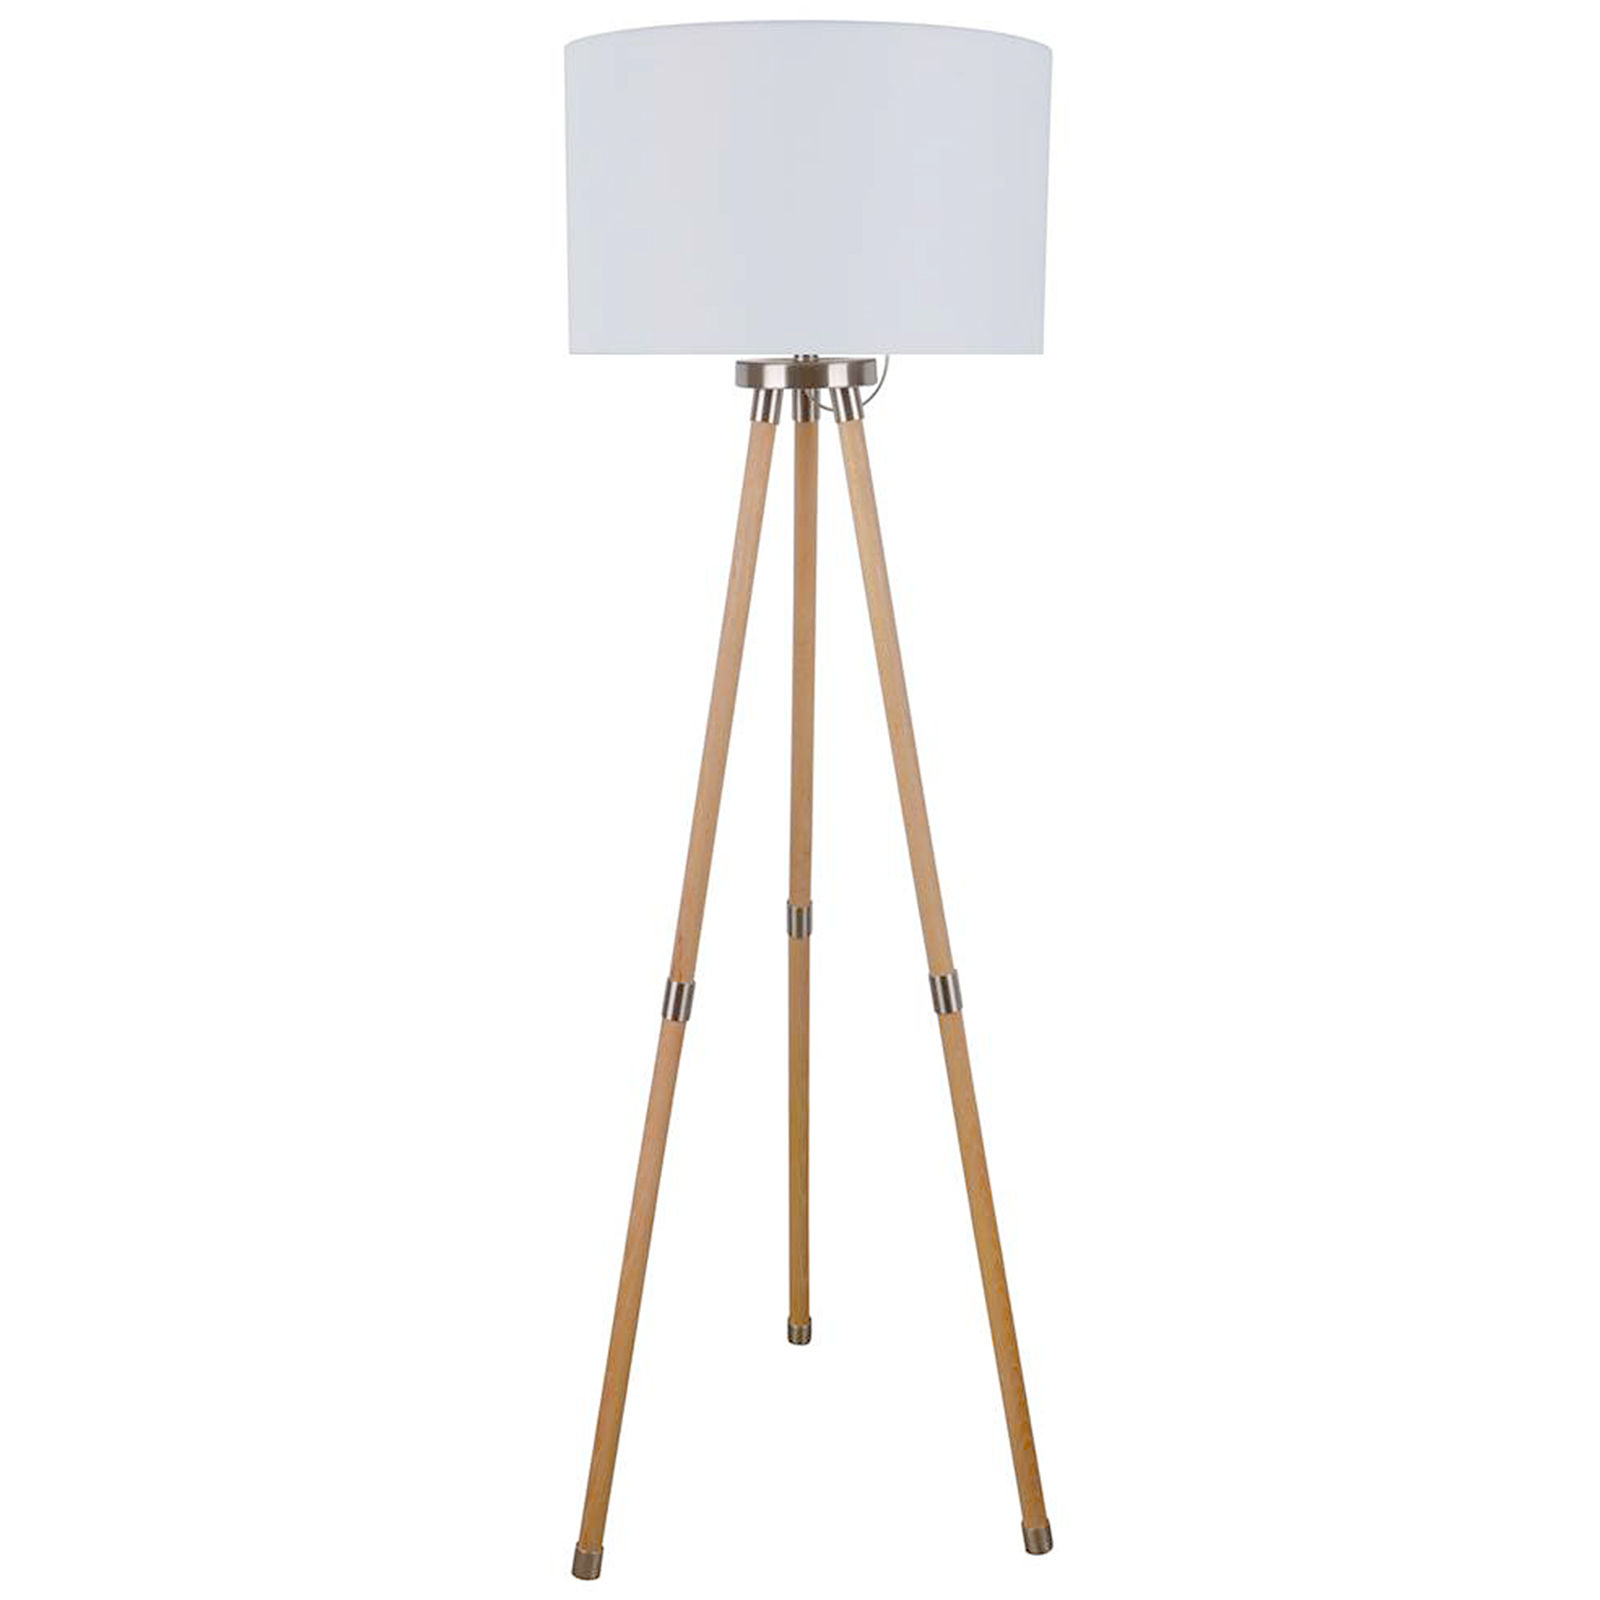 Brighten up your room with white wooden   tripod floor lamp